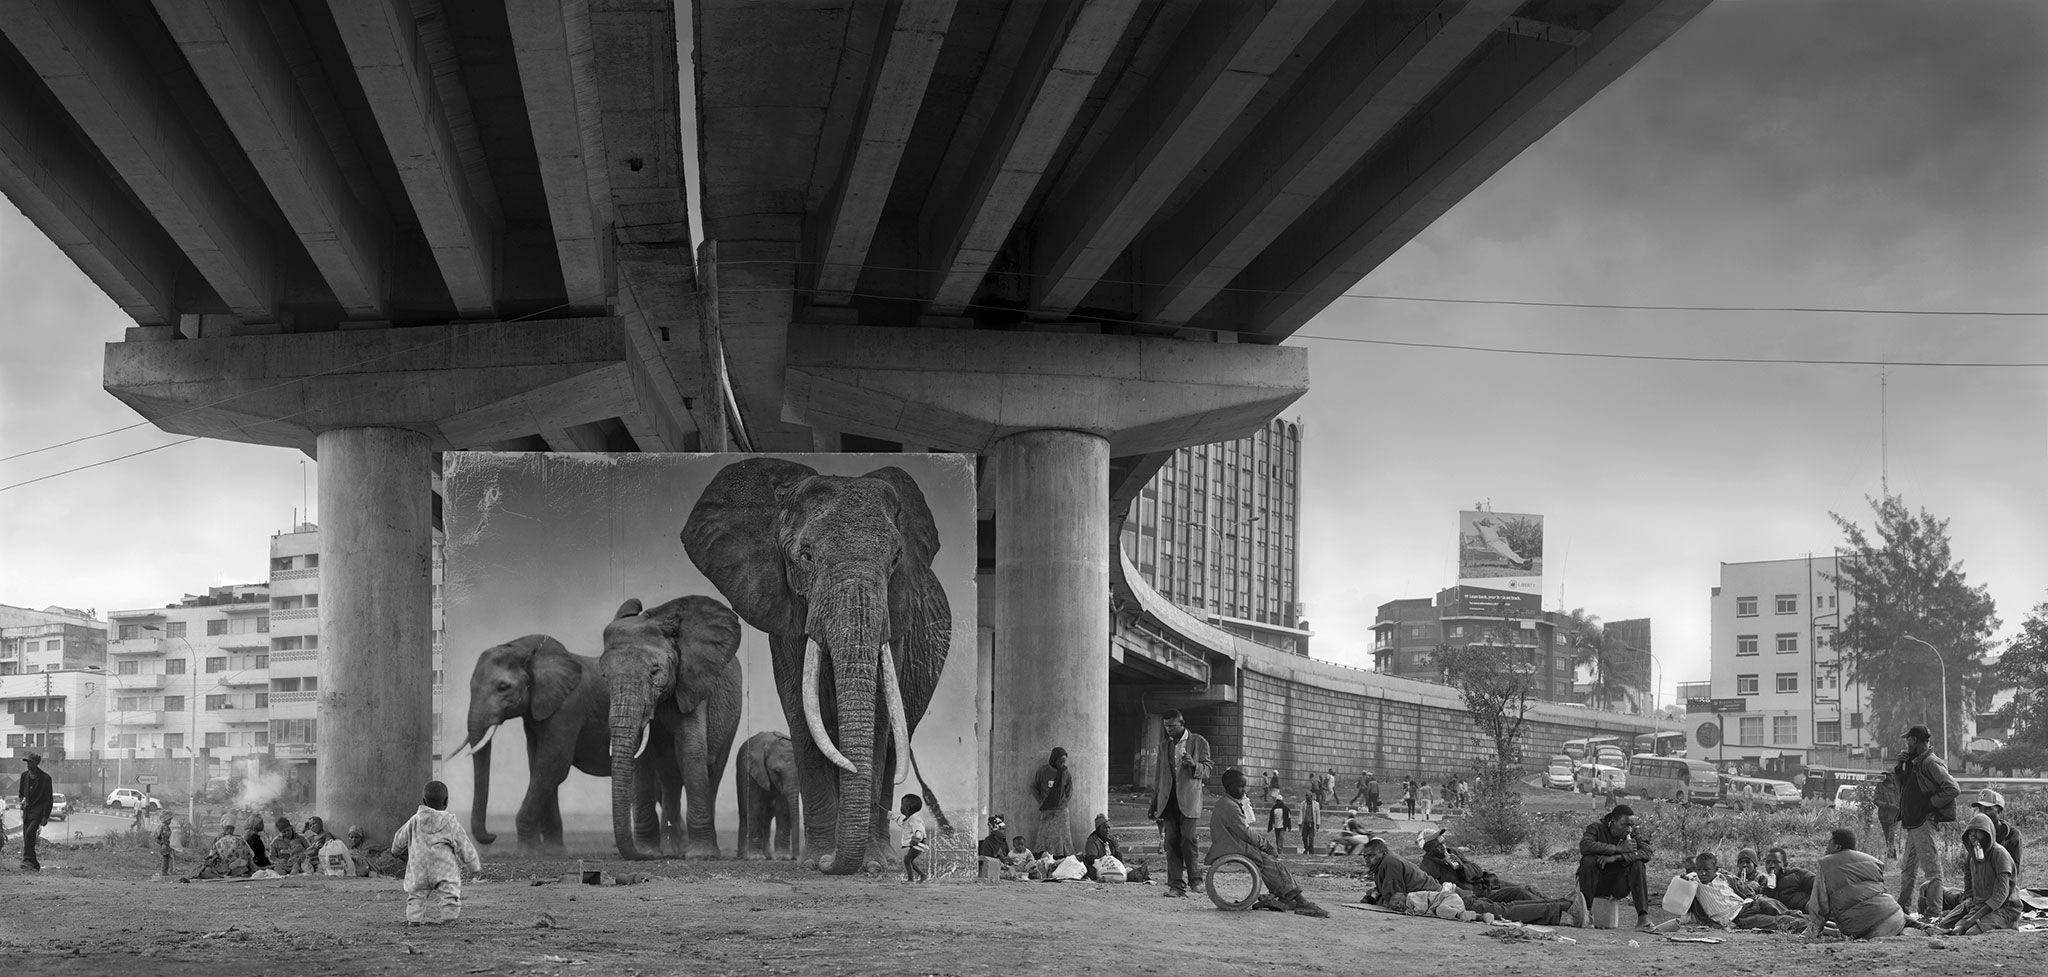 underpass-with-elephants-3800px.jpg